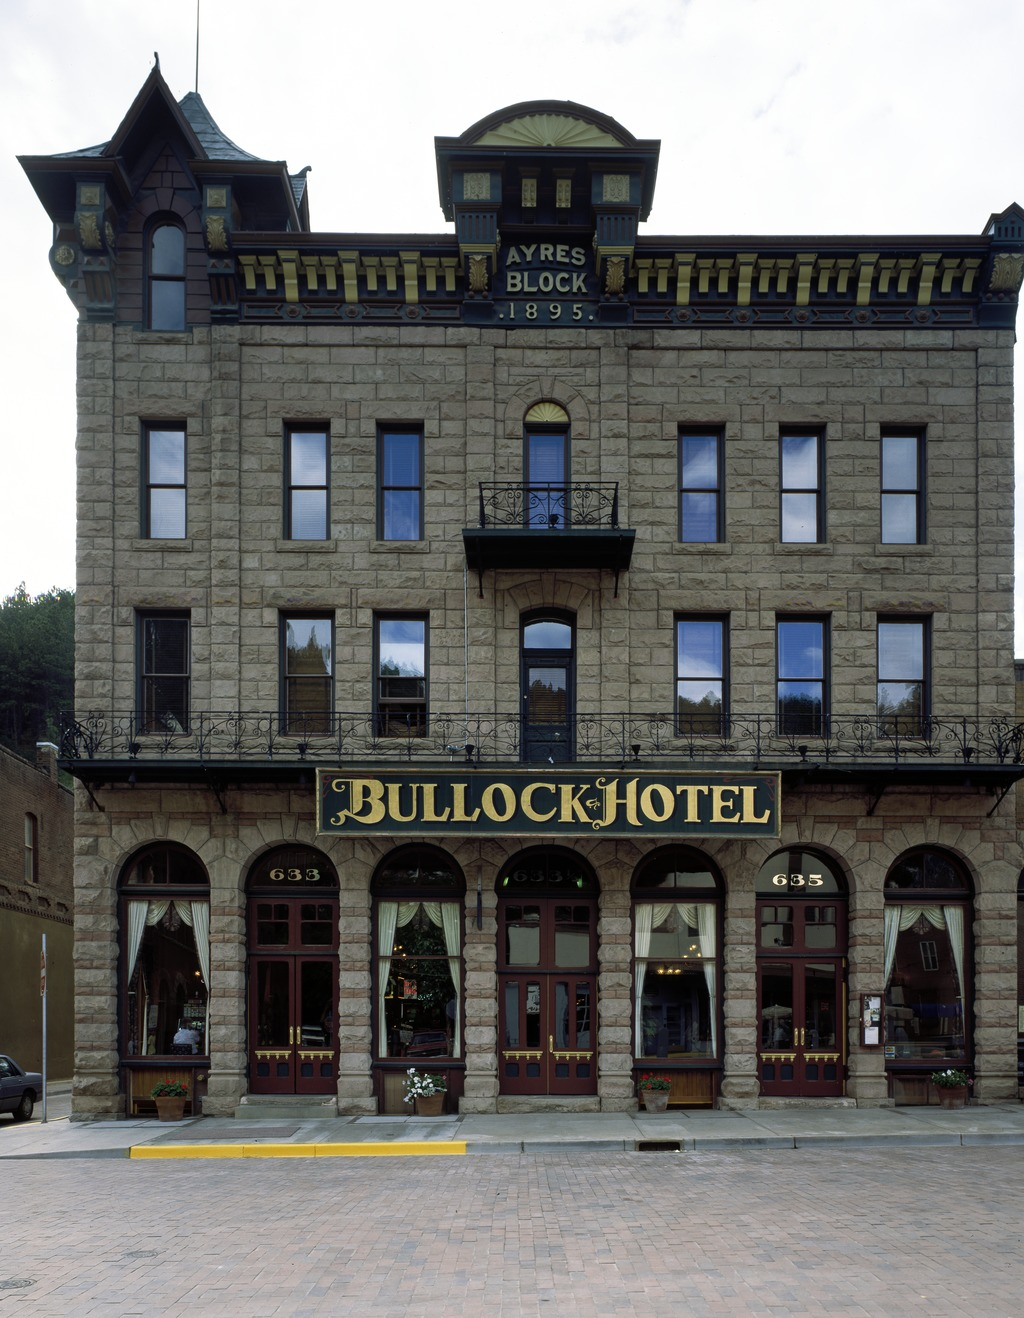 The Bullock Hotel was built in 1896. It is the oldest hotel in Deadwood.